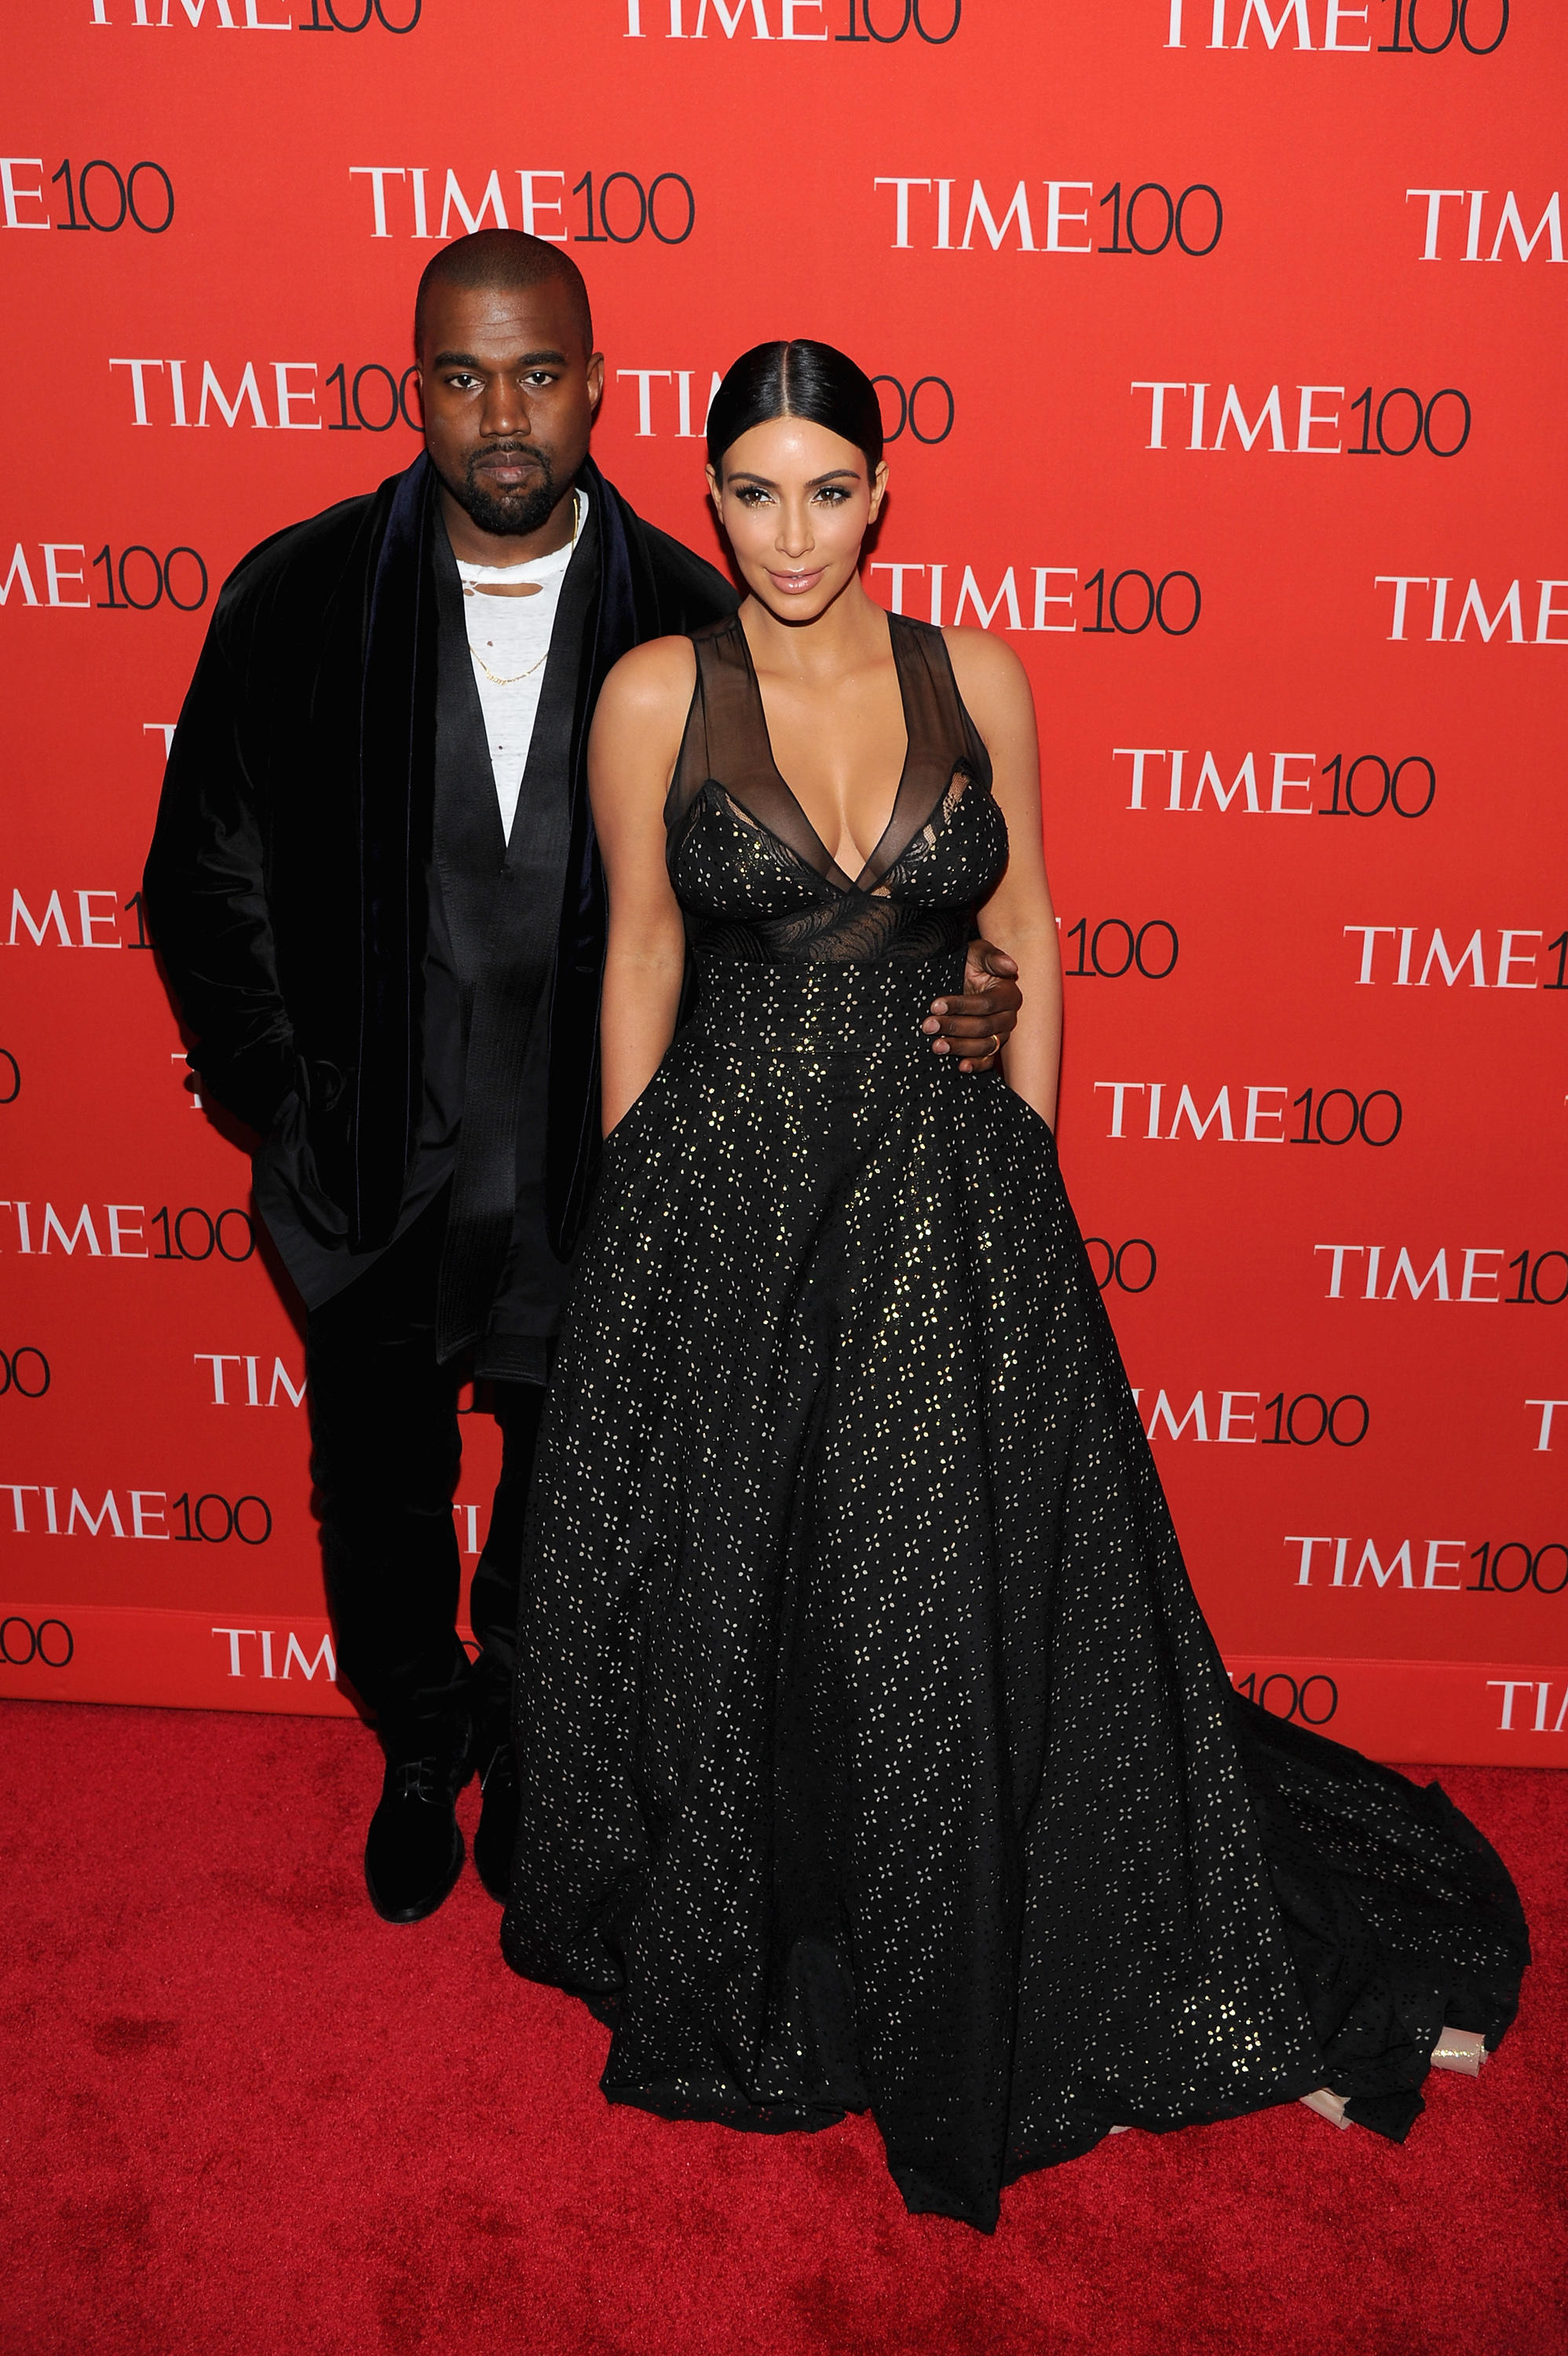 Kanye West and Kim Kardashian at TIME 100's Event